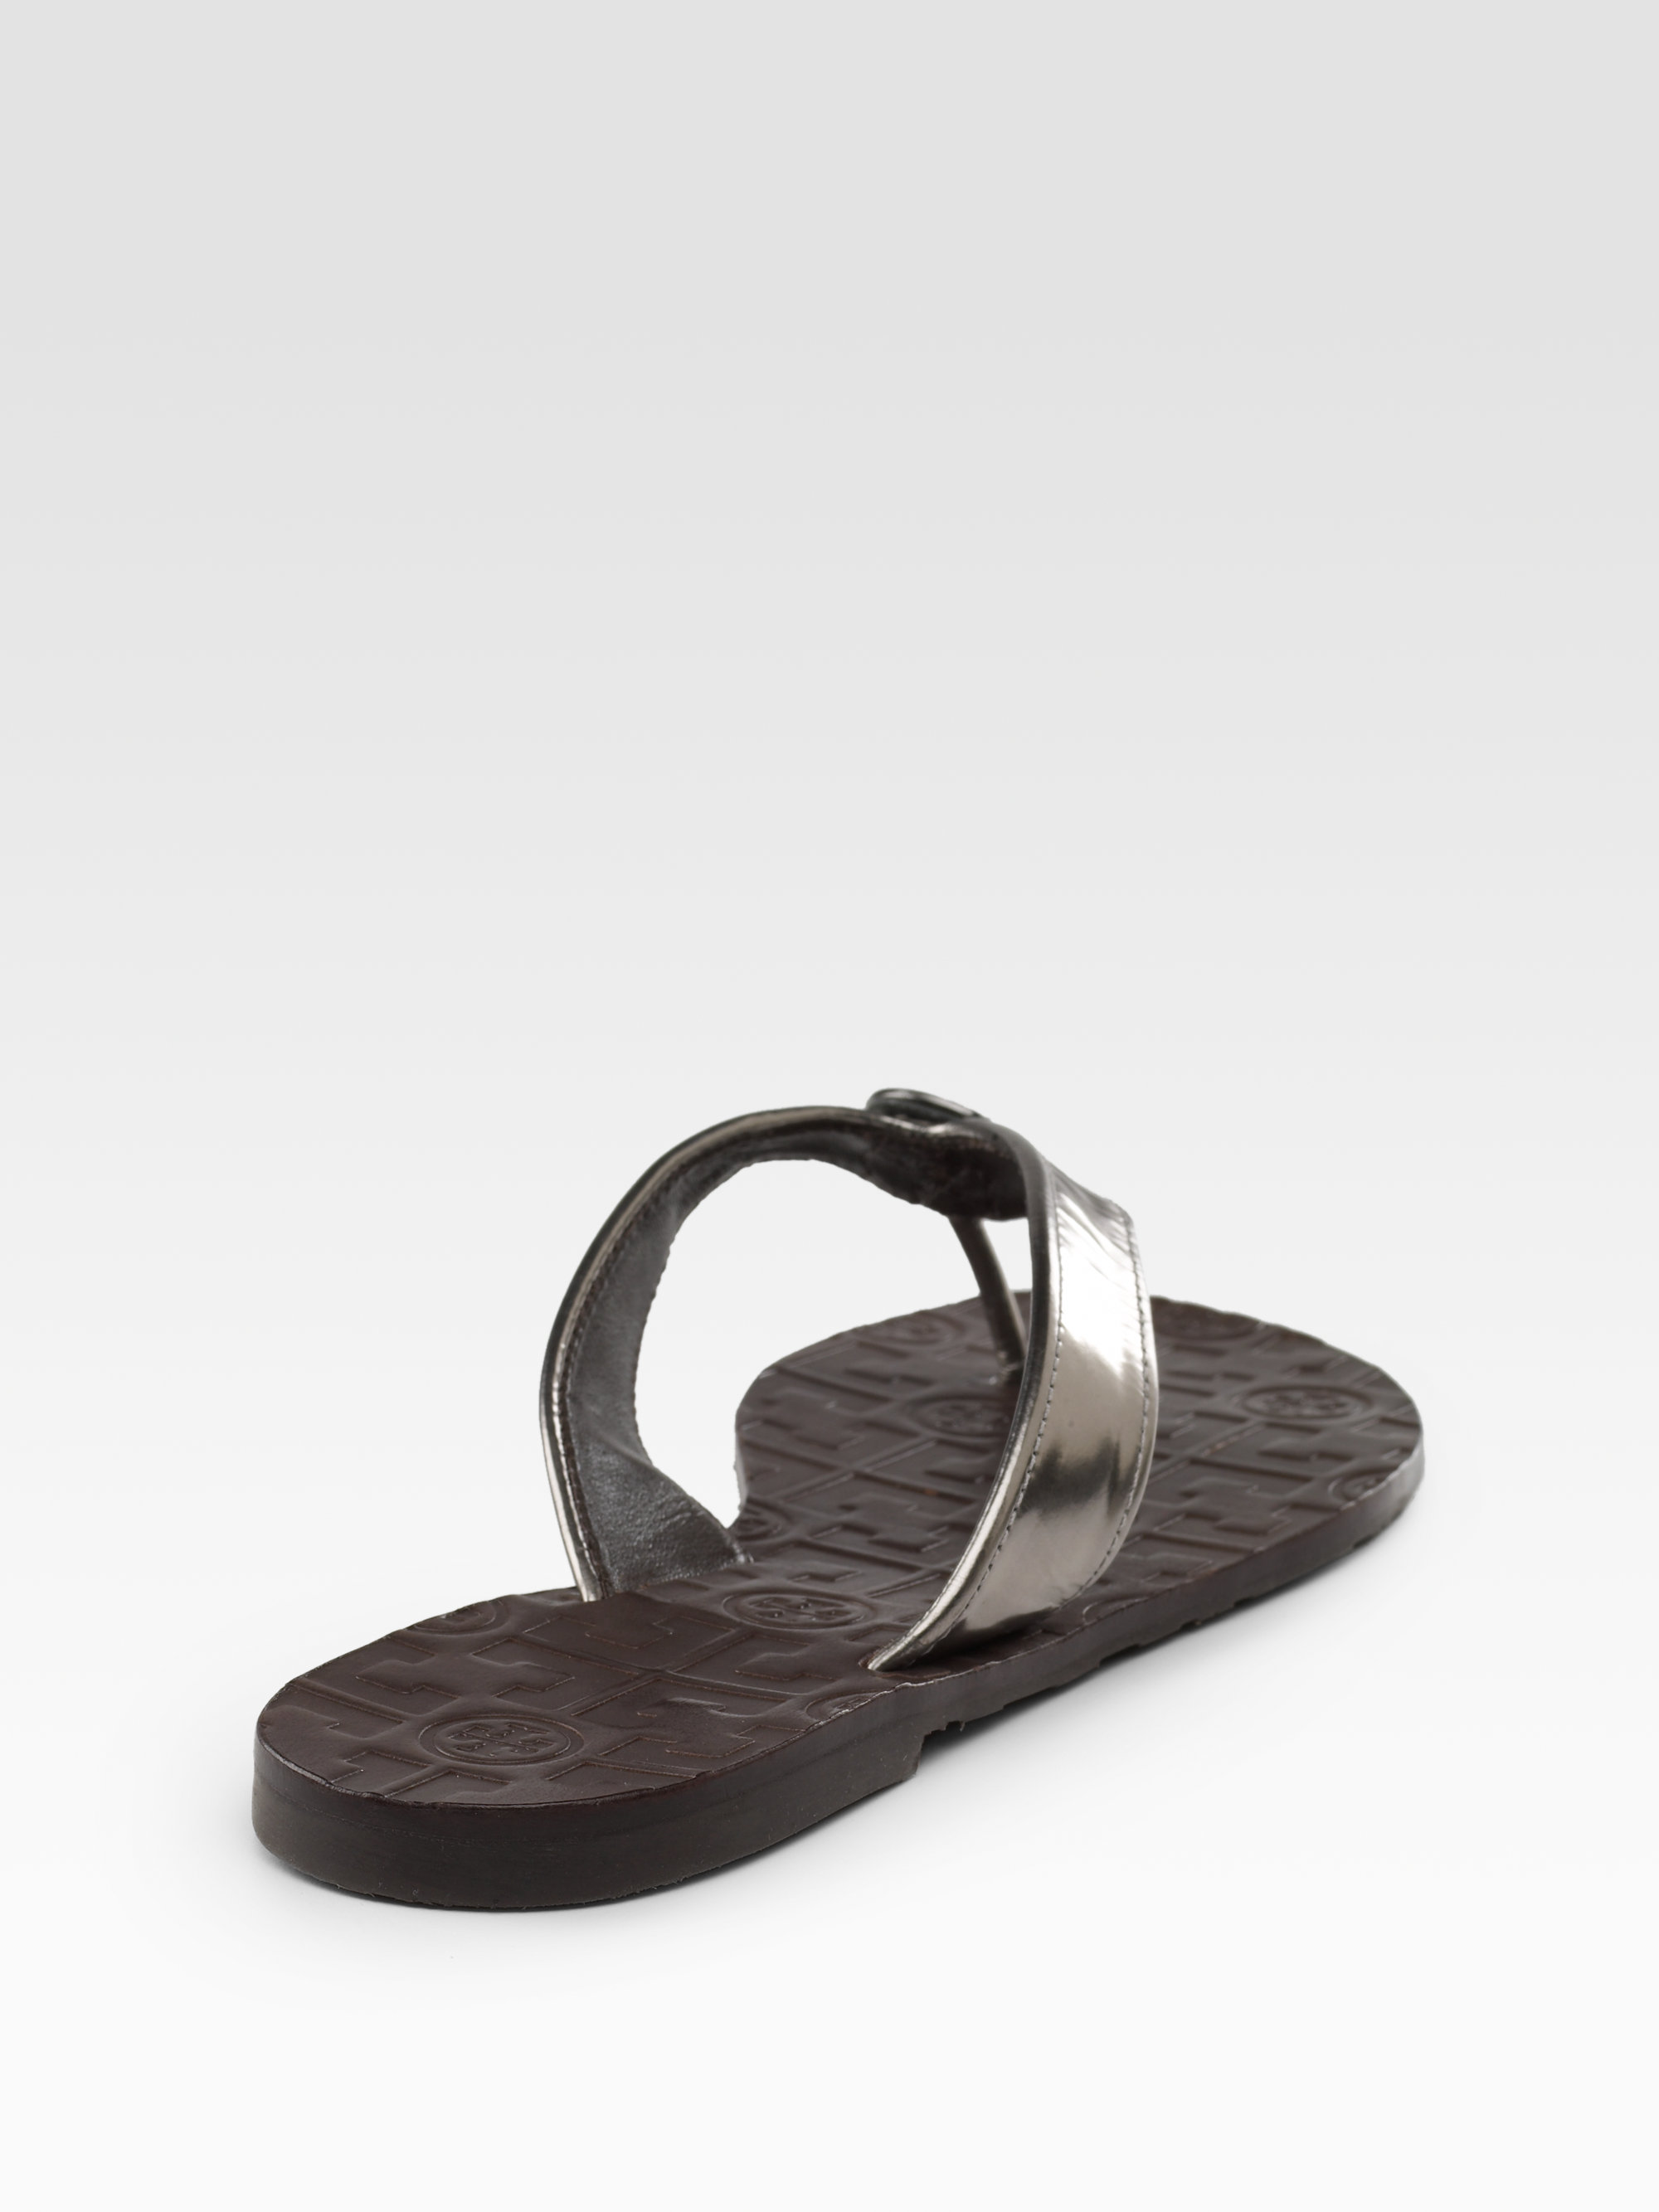 0e5eb35f1 Lyst - Tory Burch Thora Metallic Leather Thong Sandals in Black